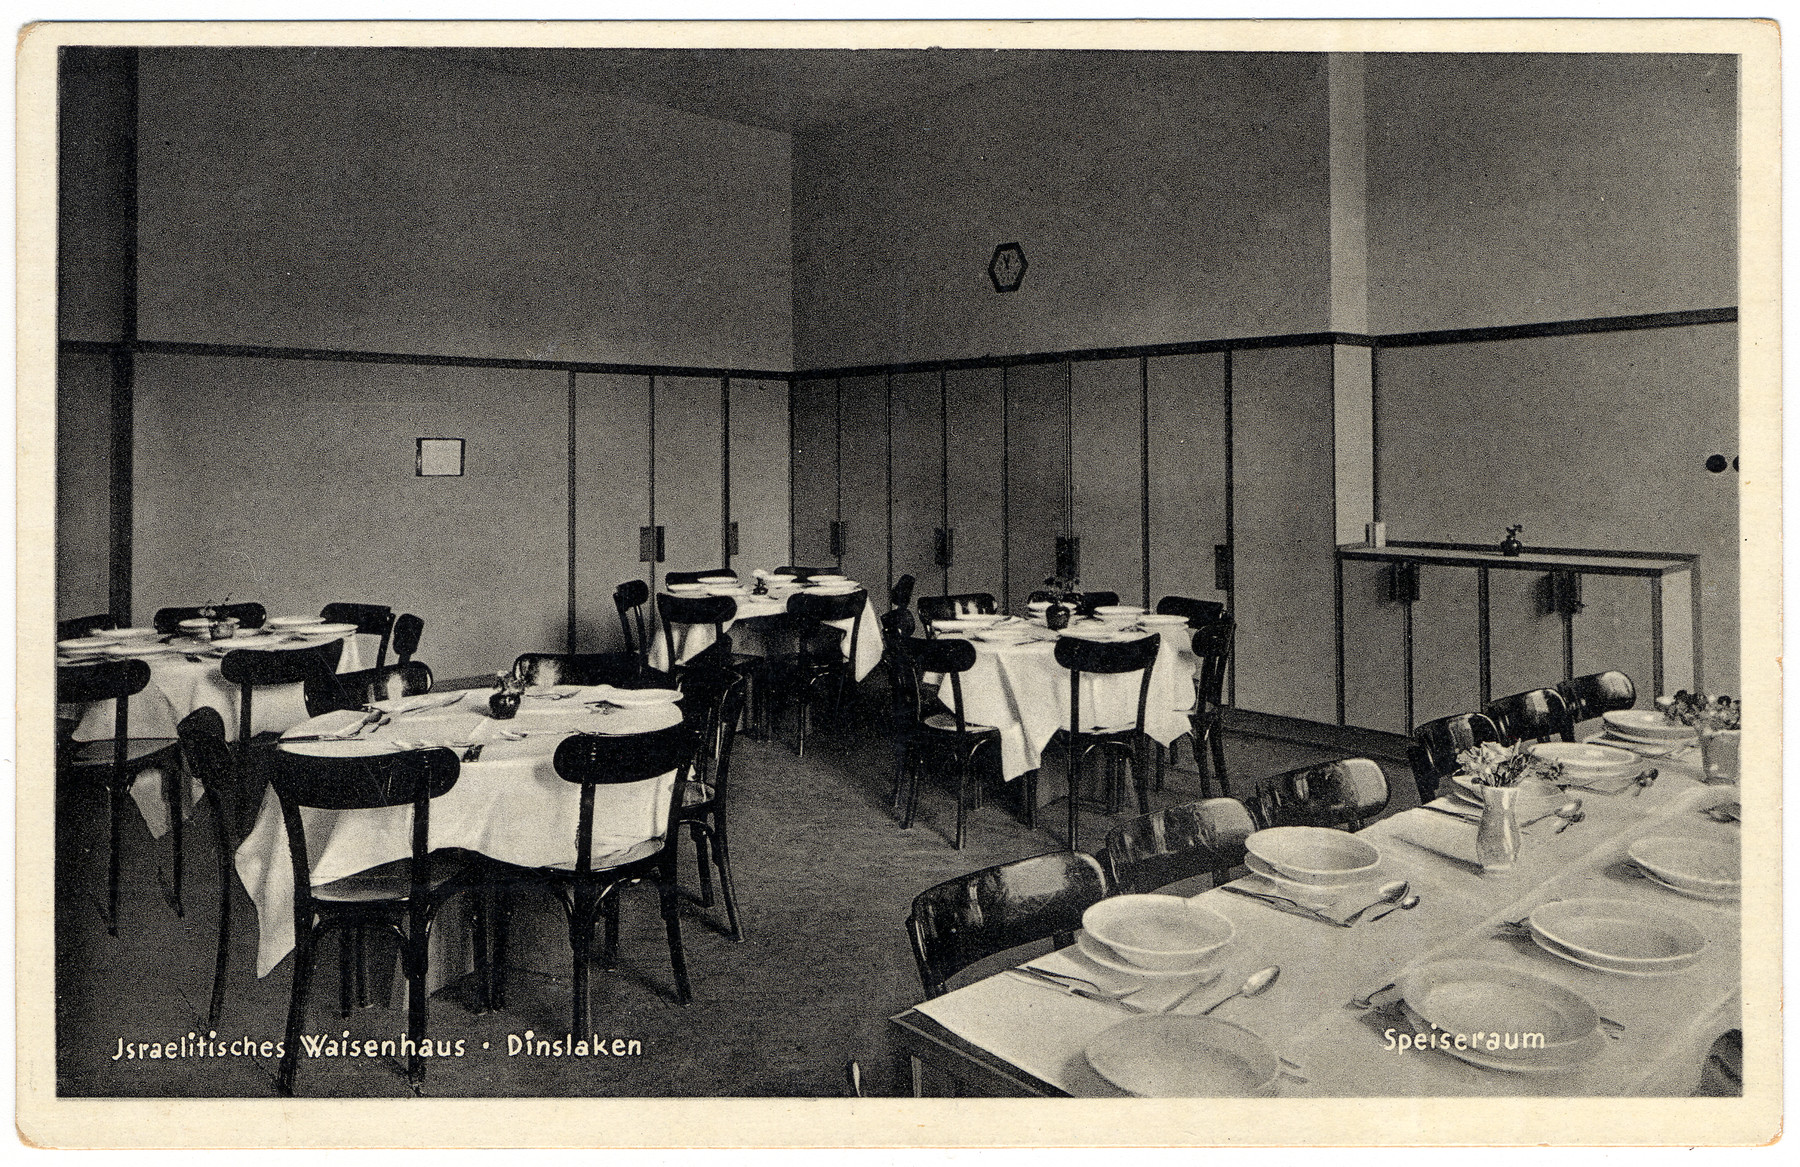 Interior view of the dining hall of the Dinslaken Jewish orphanage.